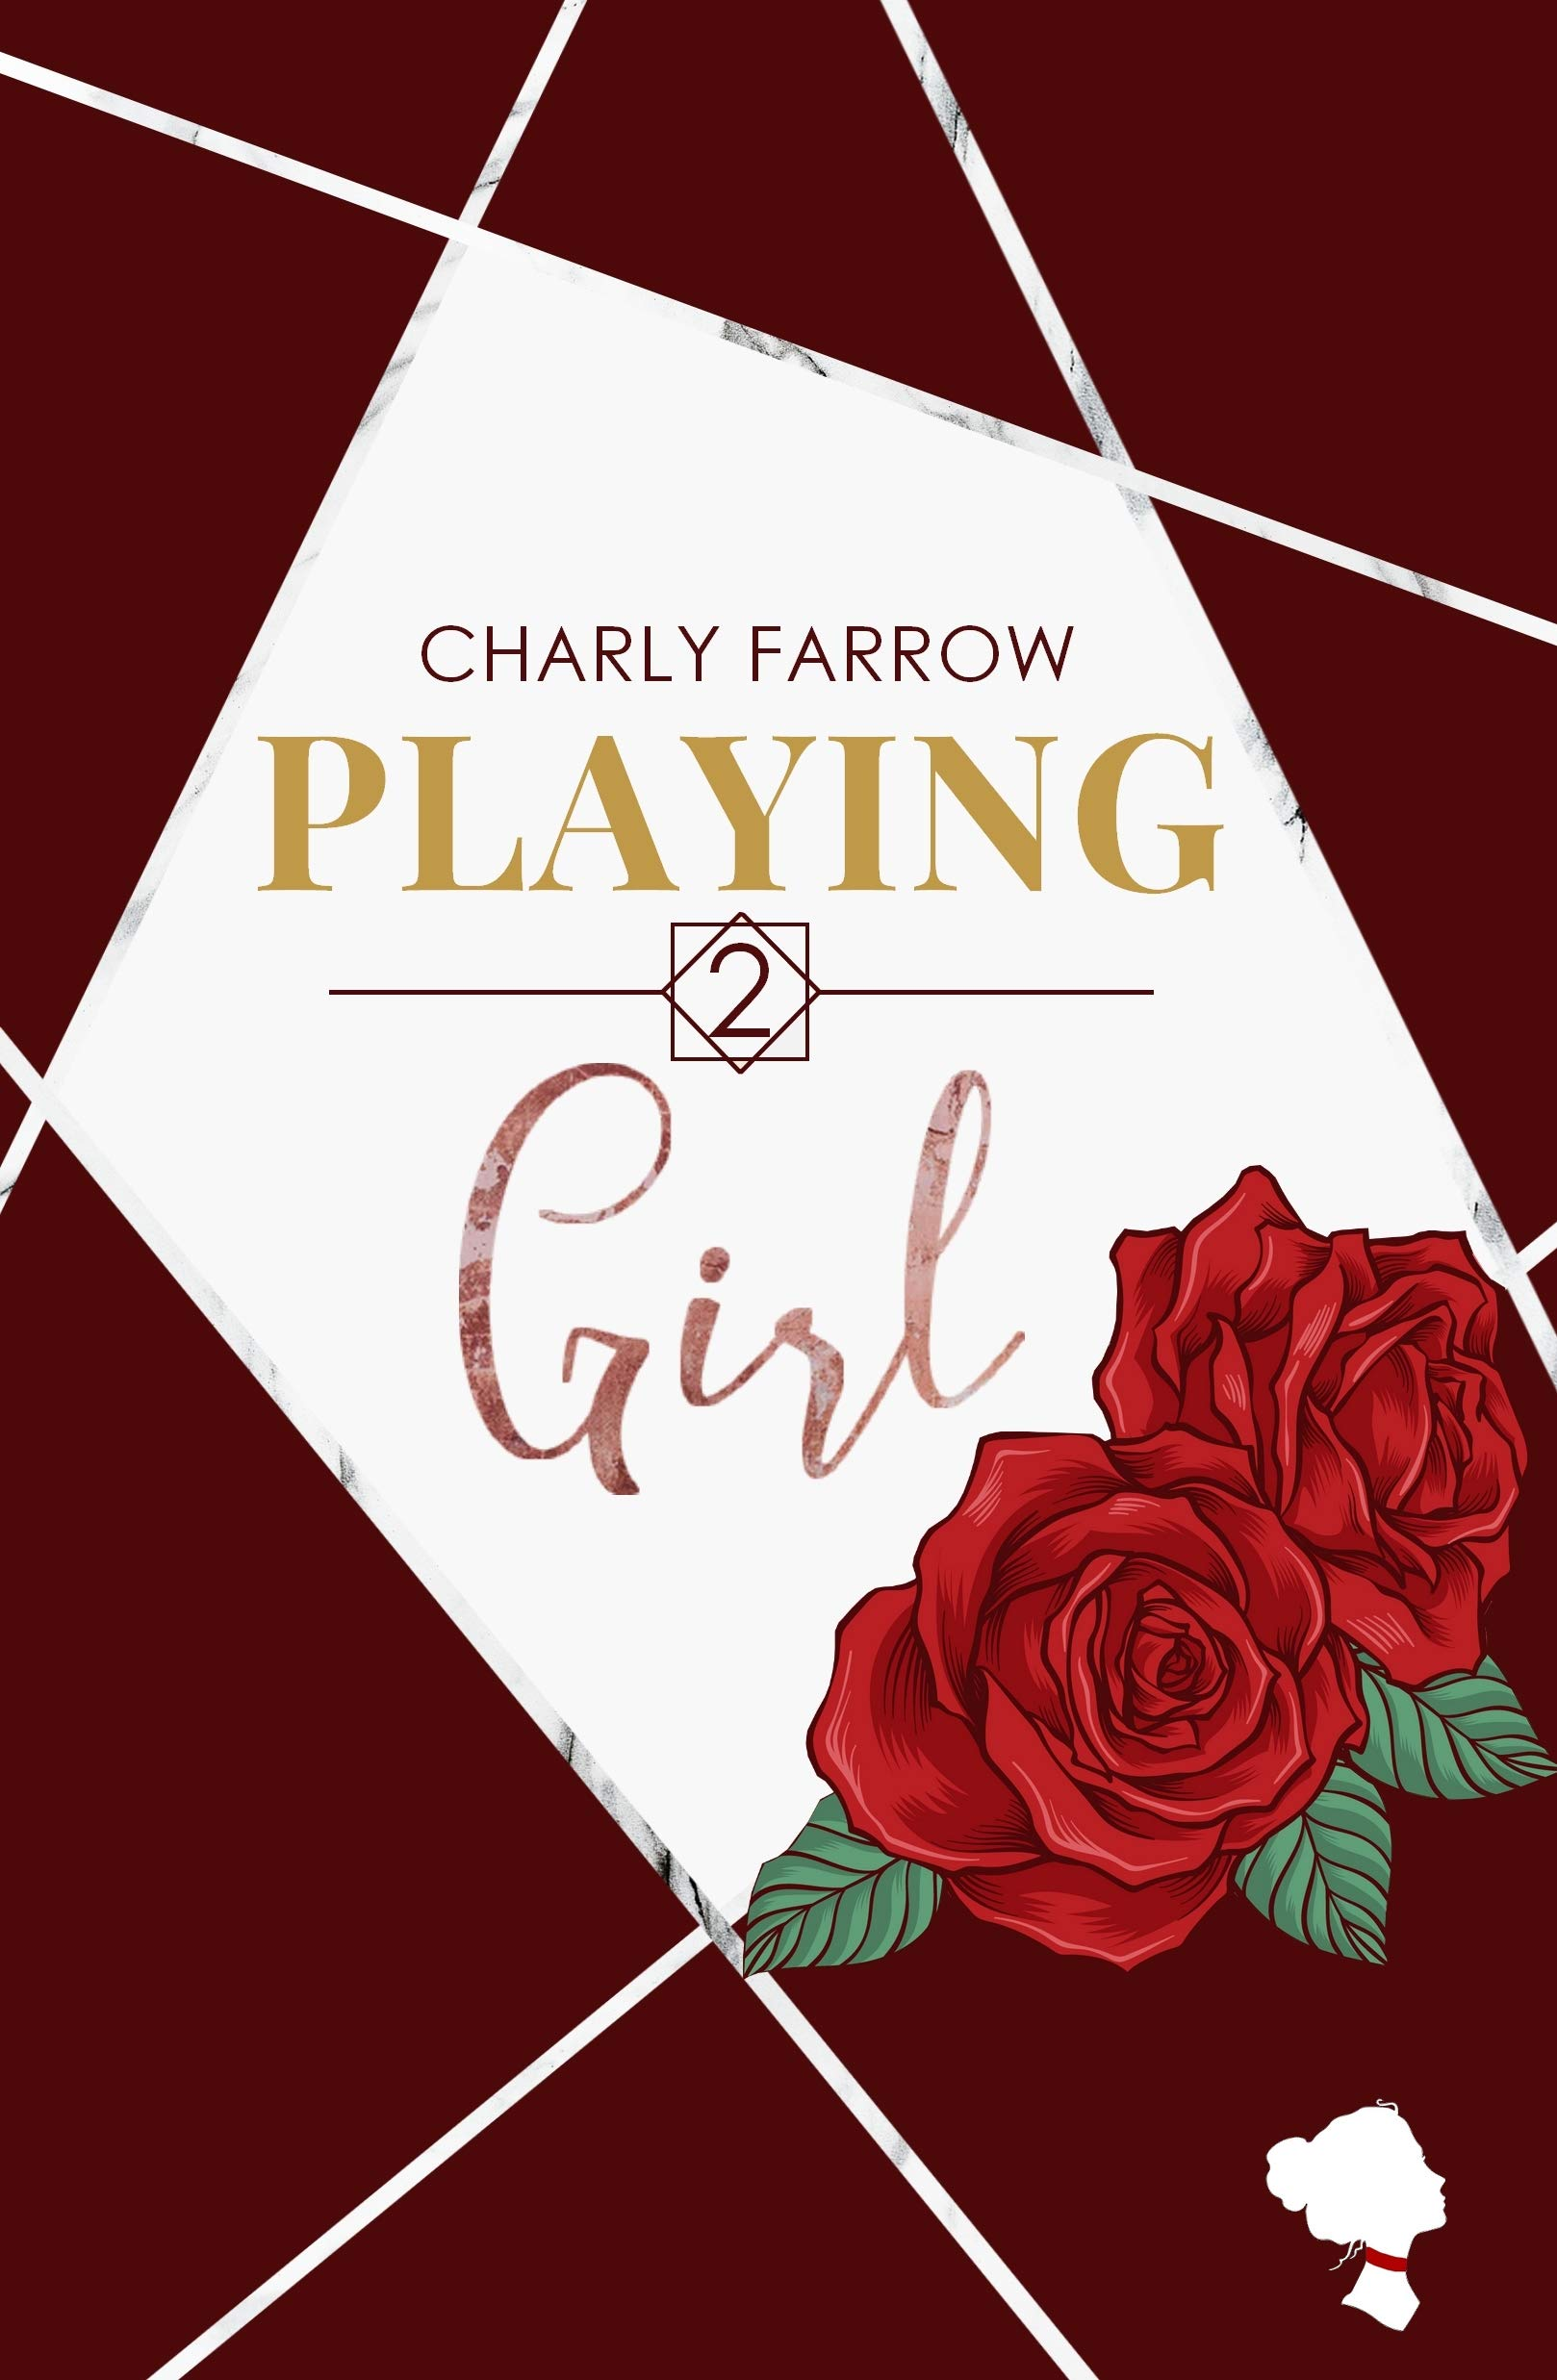 Playing Girl : tome 2 (Playing Boss) par Charly Farrow